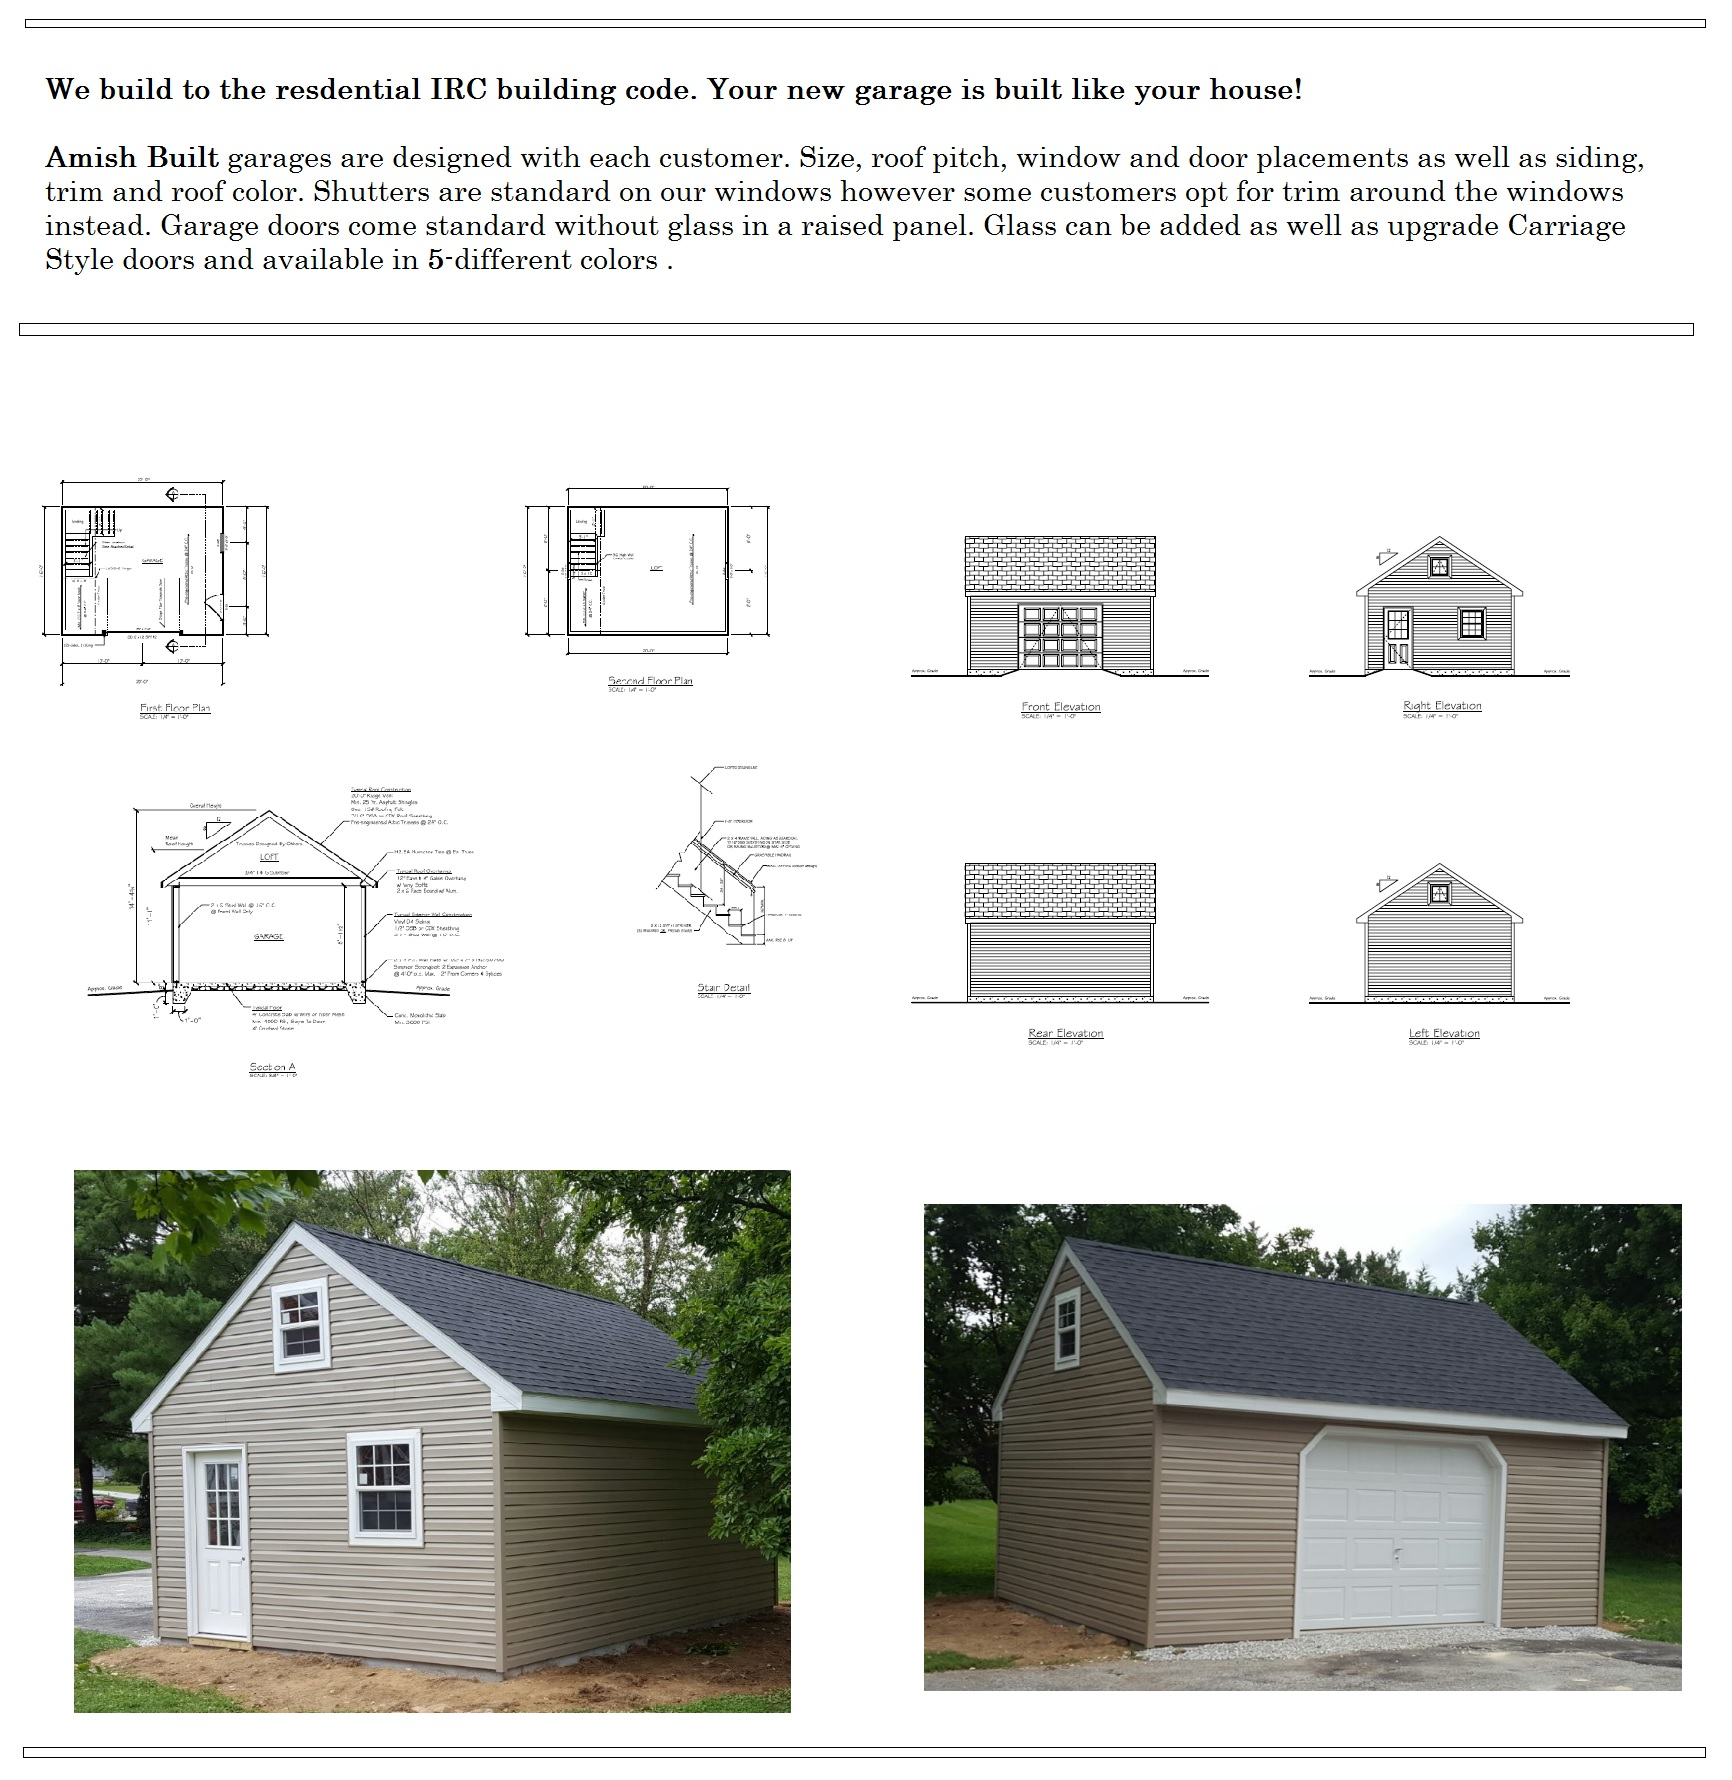 foote story x double wide garage from amish sheds builders bob two